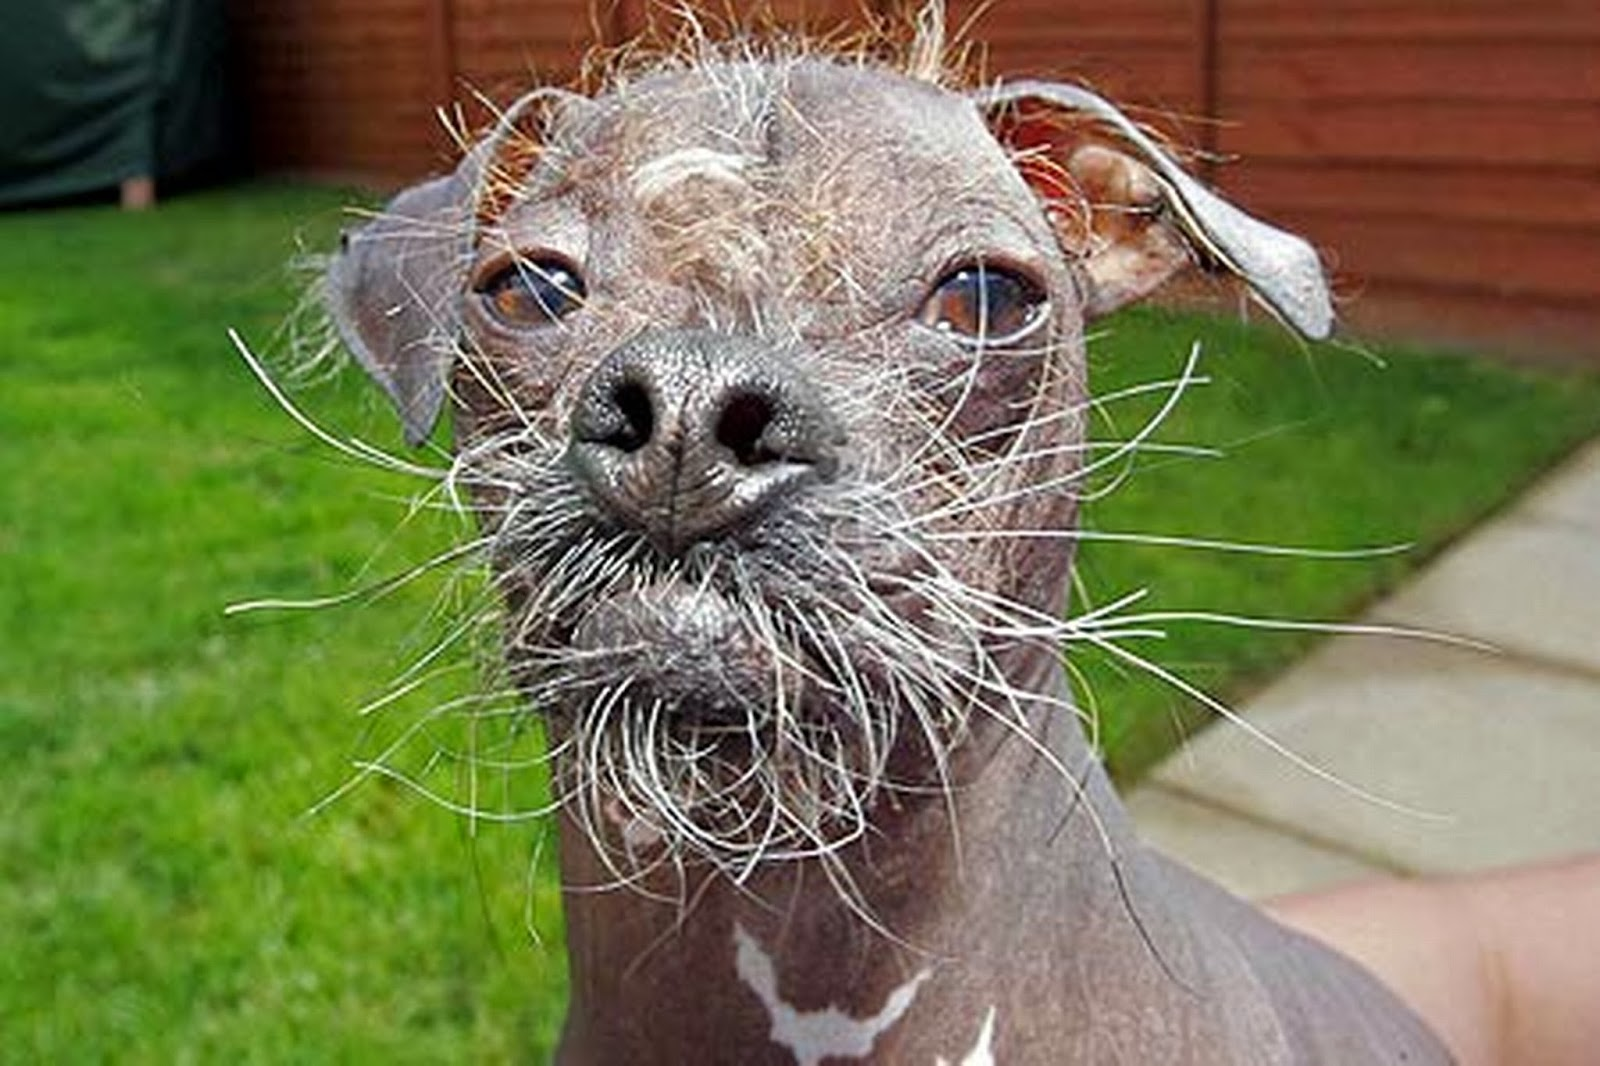 ugly animals ugliest funny dogs cat beards pets baby animal dog puppy cute worlds beard hairless looking cutest insects alpha